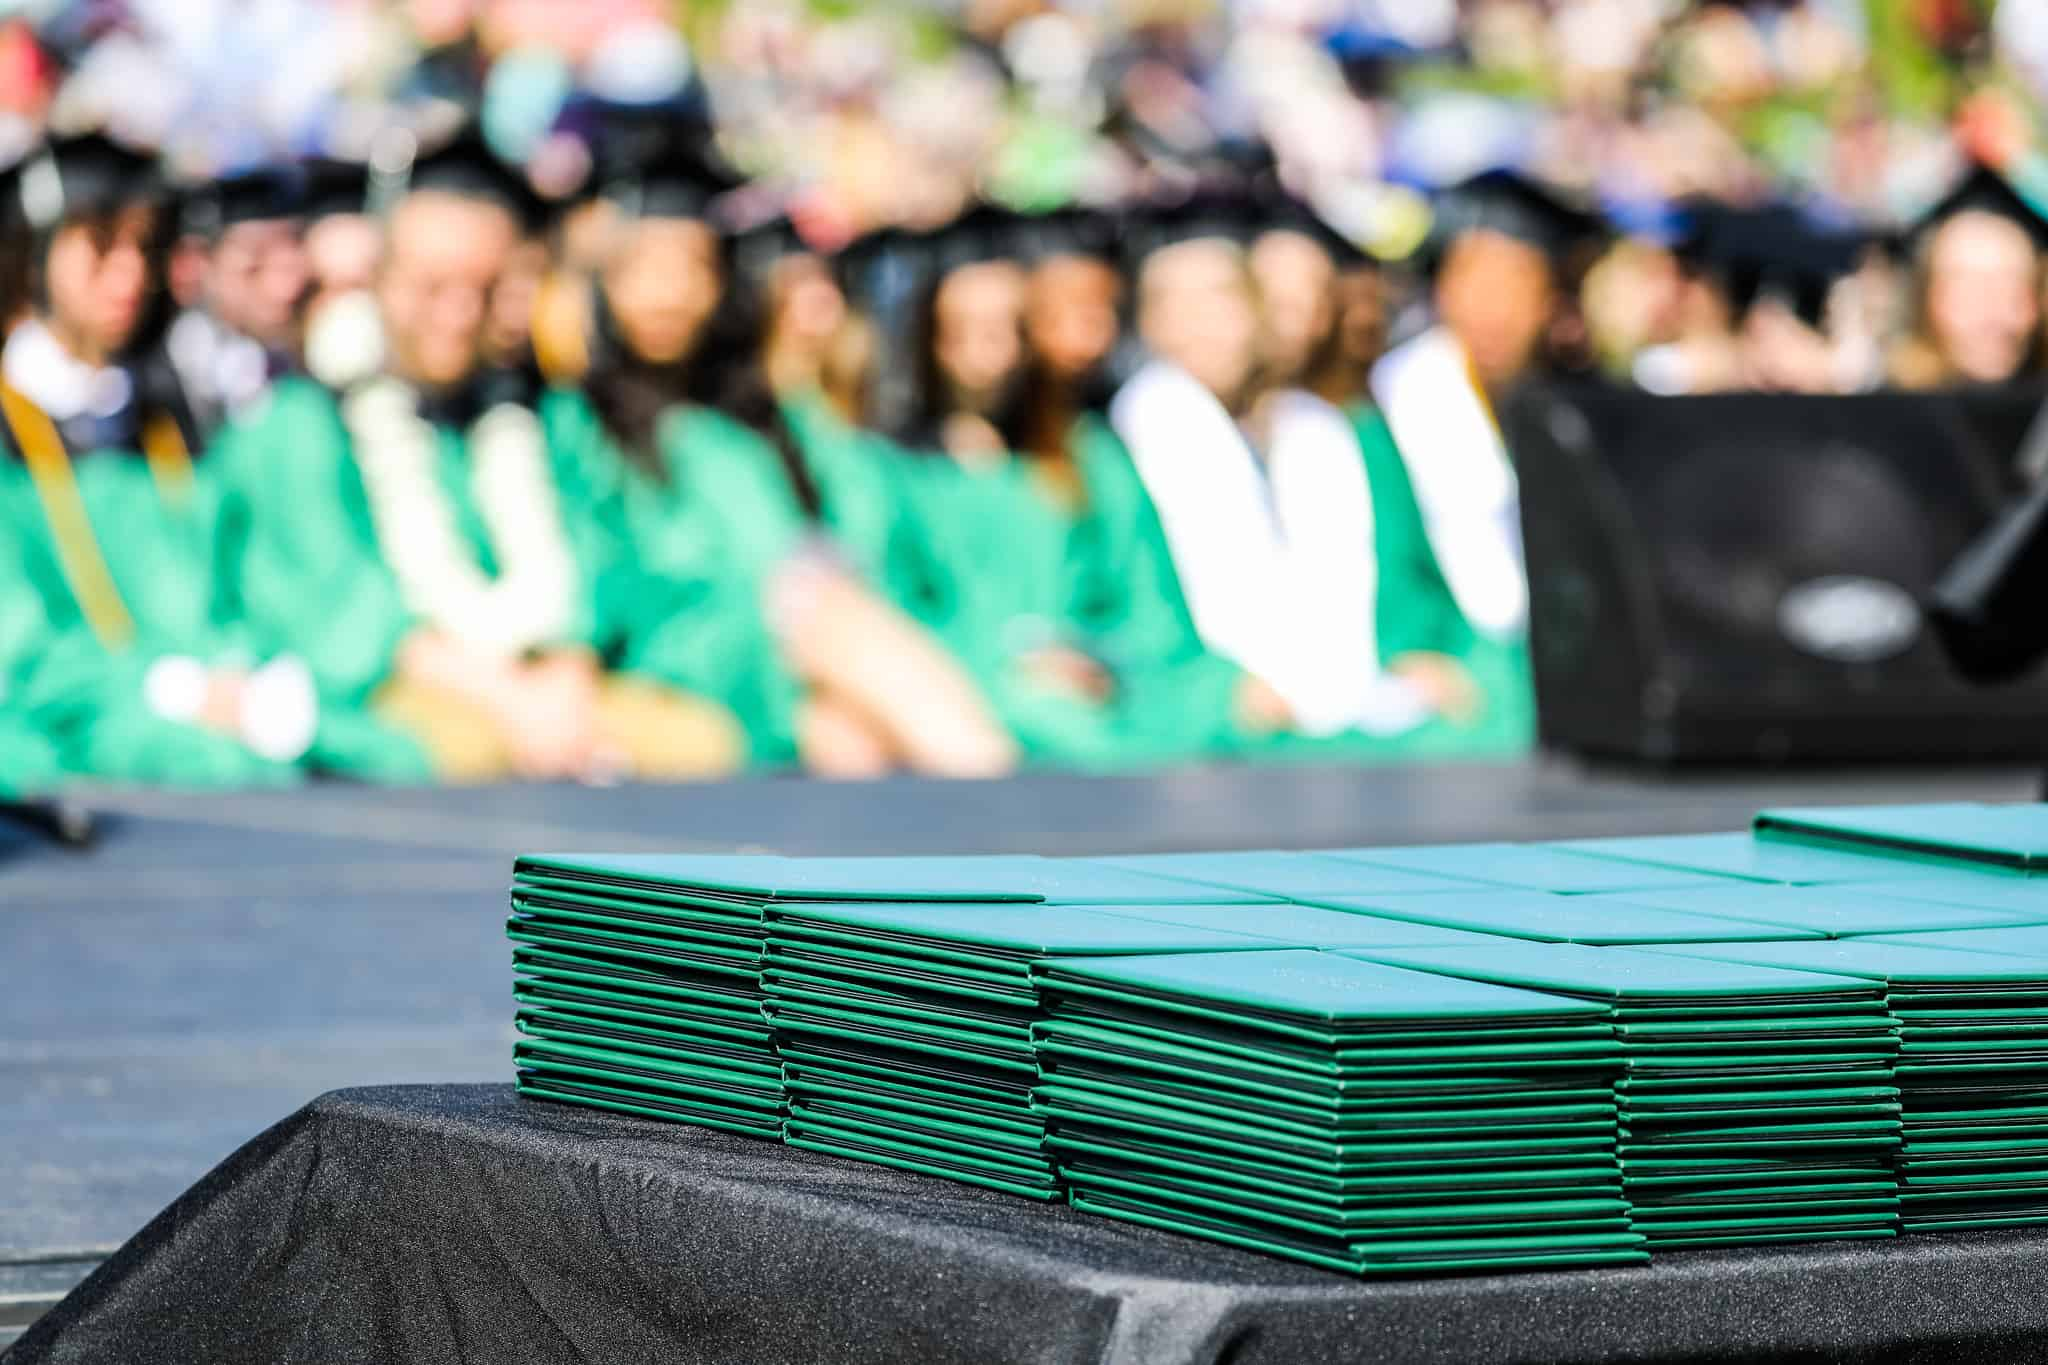 students at graduation with diplomas on a table